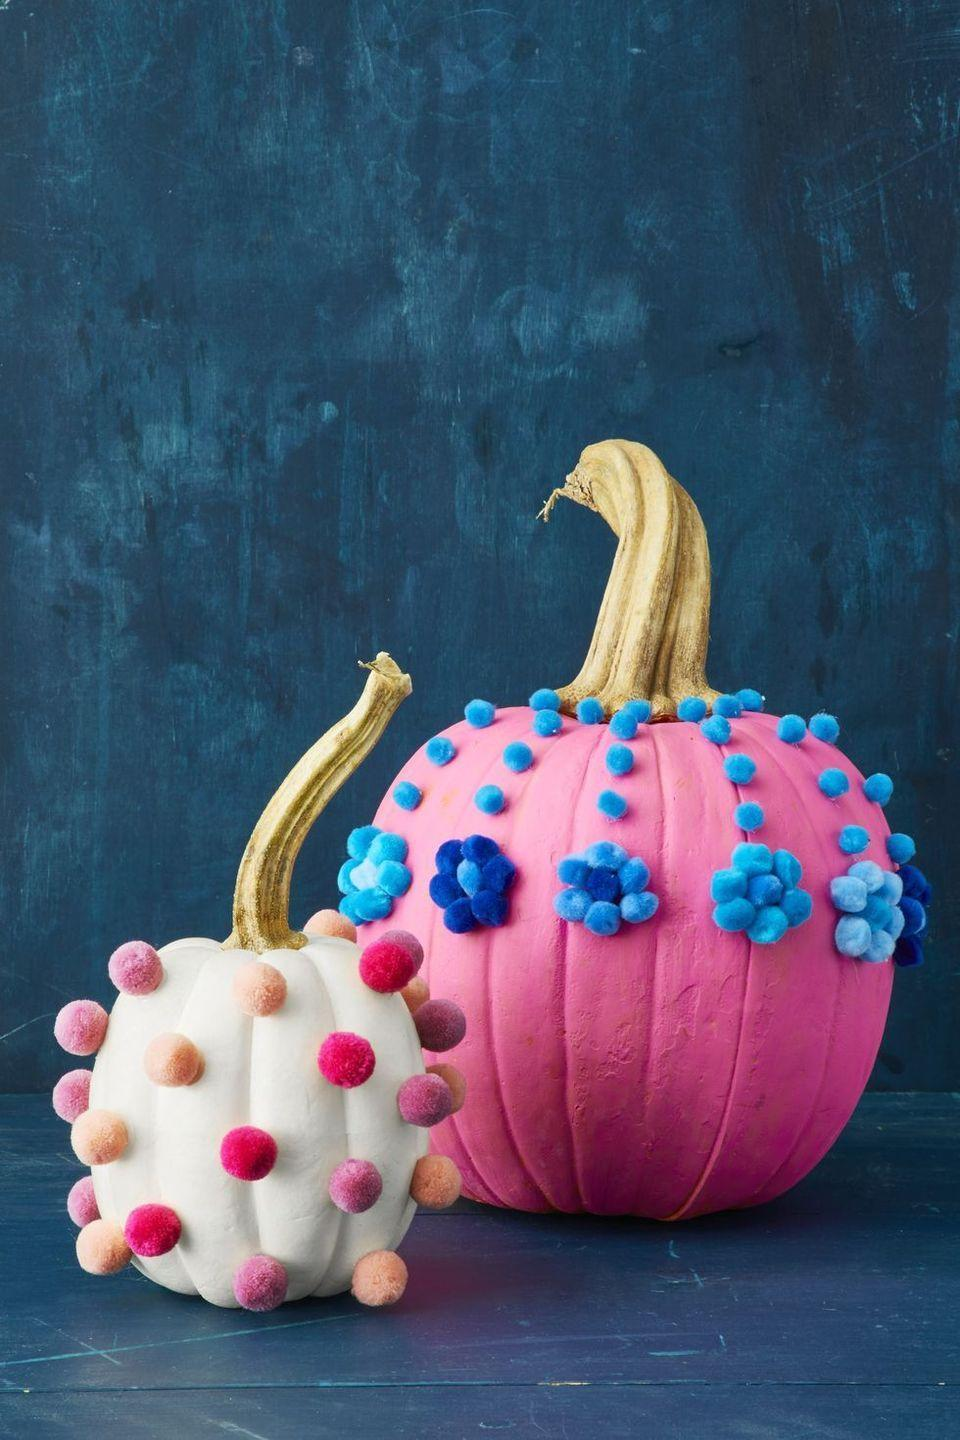 <p>Dress painted pumpkins up in colorful pom poms for a playful look that's perfect for a festive celebration with children in attendance. </p>